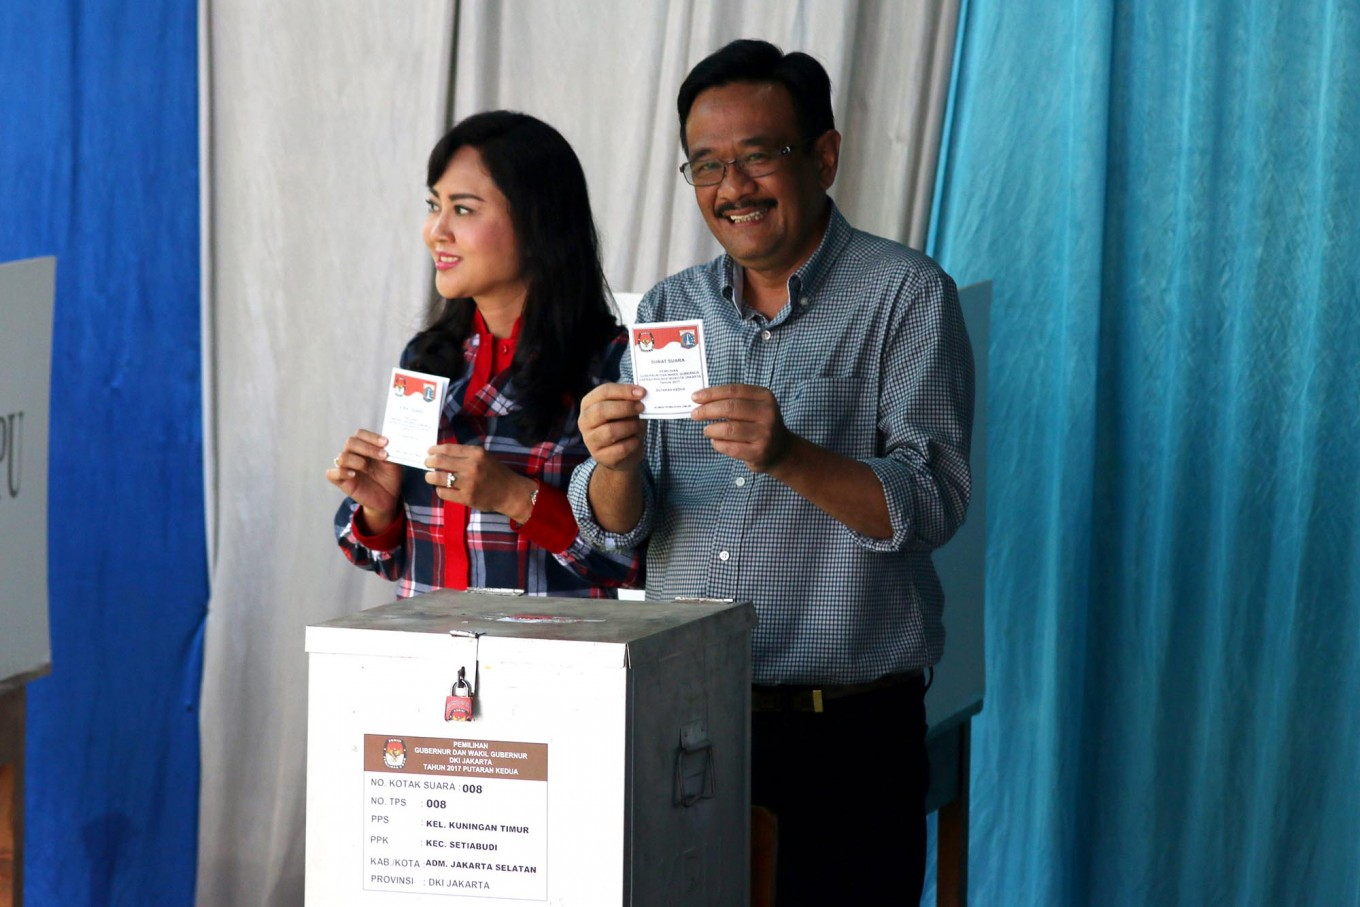 Acting governor supports Ahok's wife on Instagram - City ...